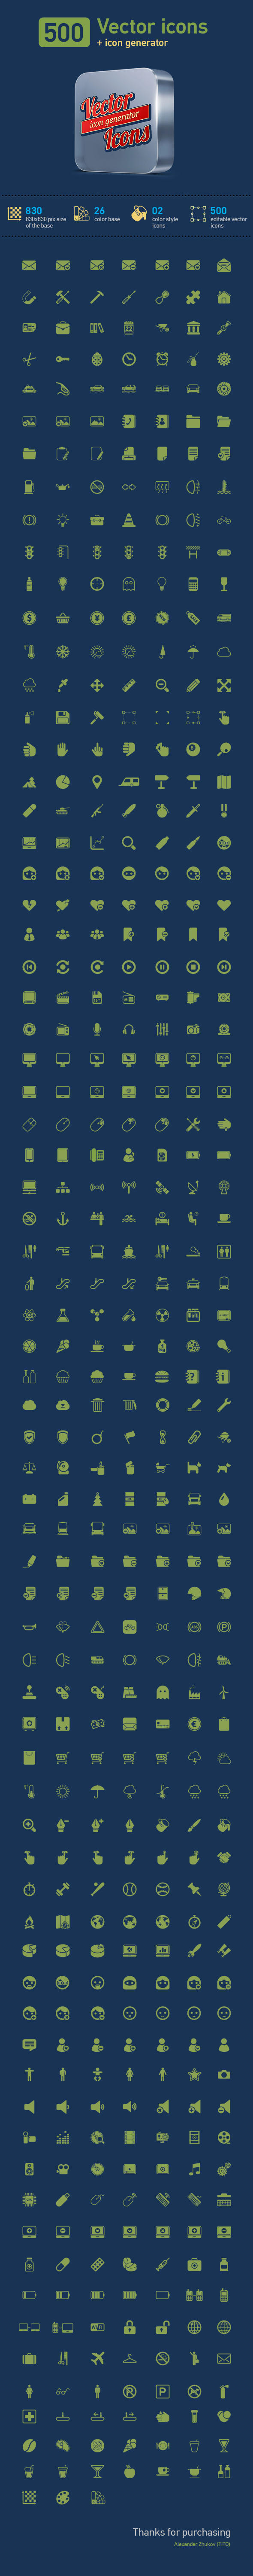 500 vector icons + icon generator by TIT0